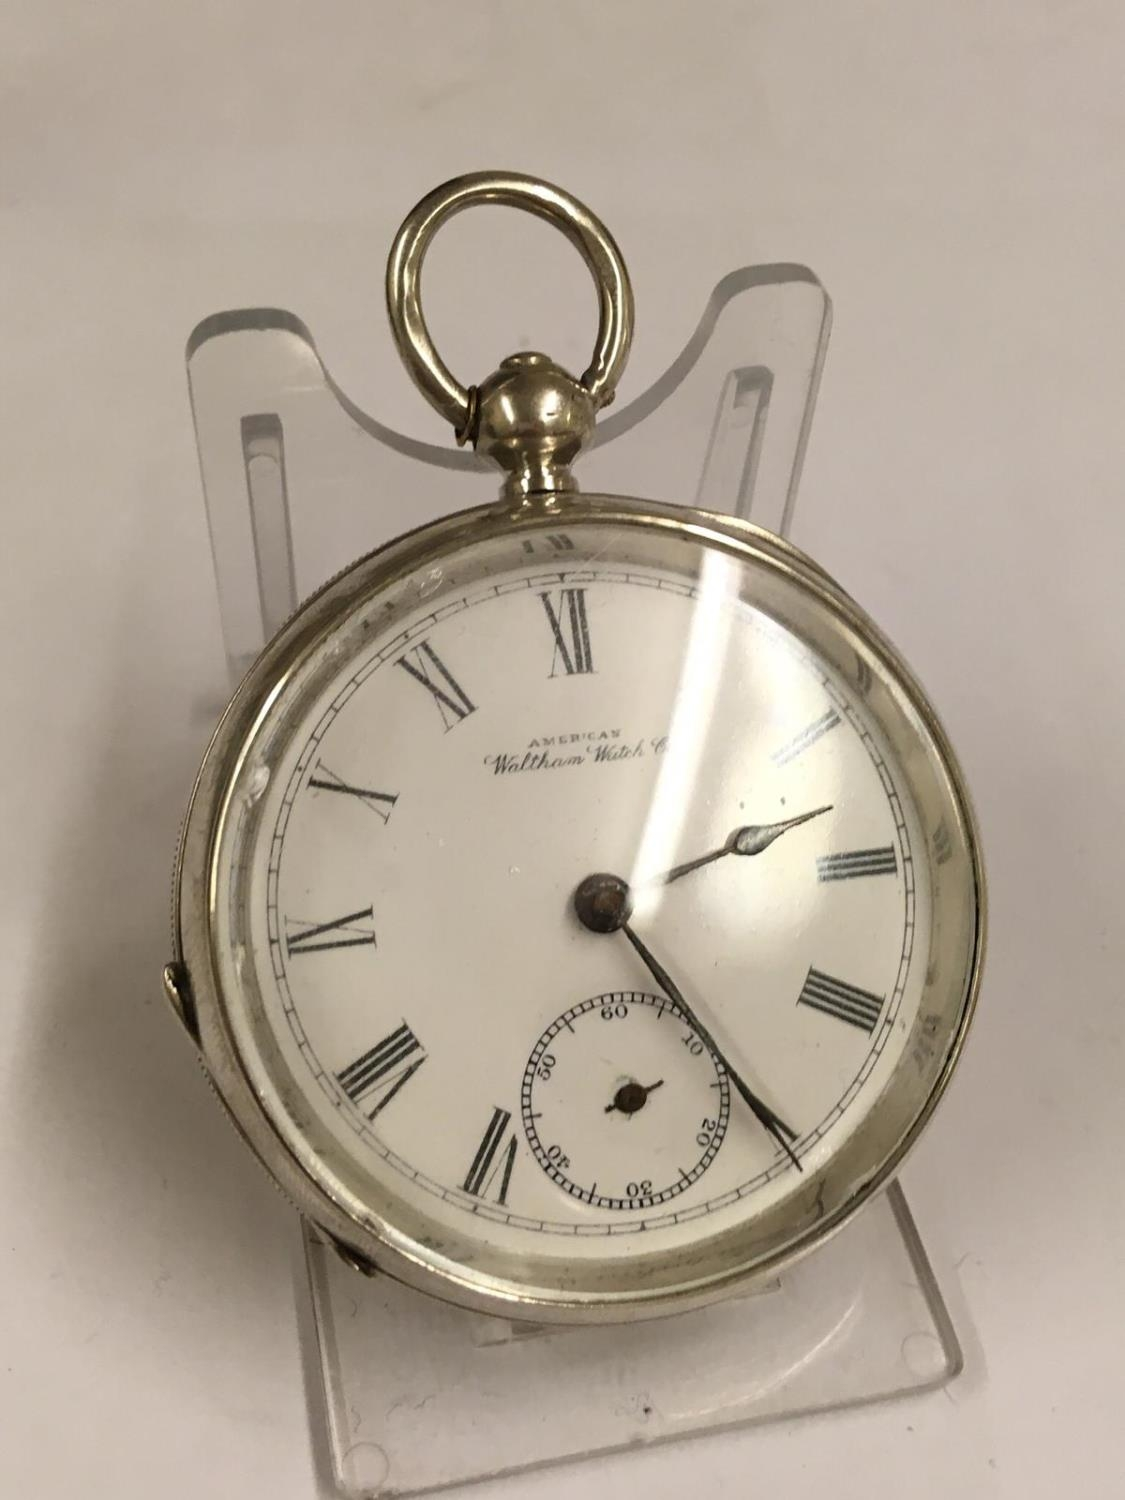 Antique solid silver Waltham Broadway , ticks if shaken but sold with no guarantees